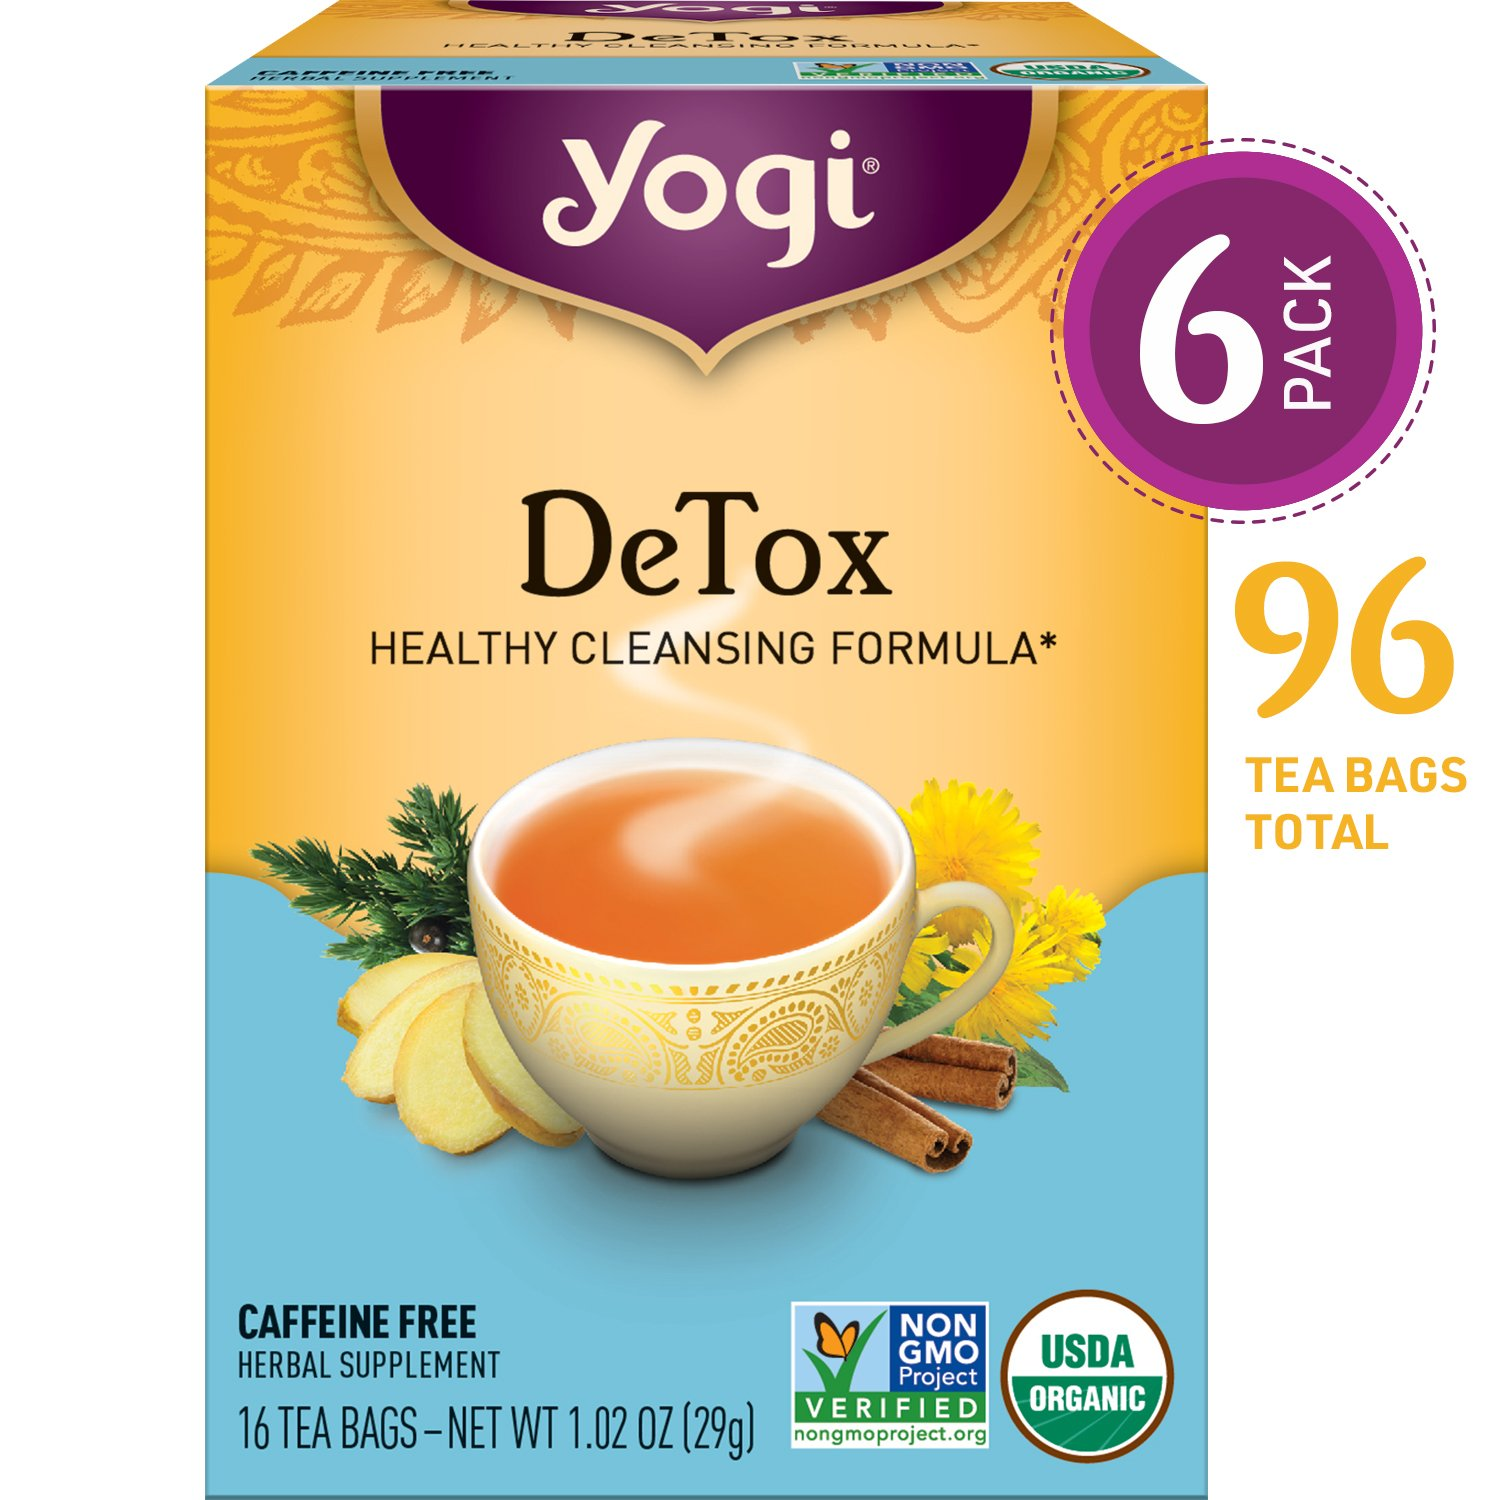 Yogi Tea - DeTox Tea - Healthy Cleansing Formula With Traditional Ayurvedic Herbs - 6 Pack, 96 Tea Bags Total by Yogi